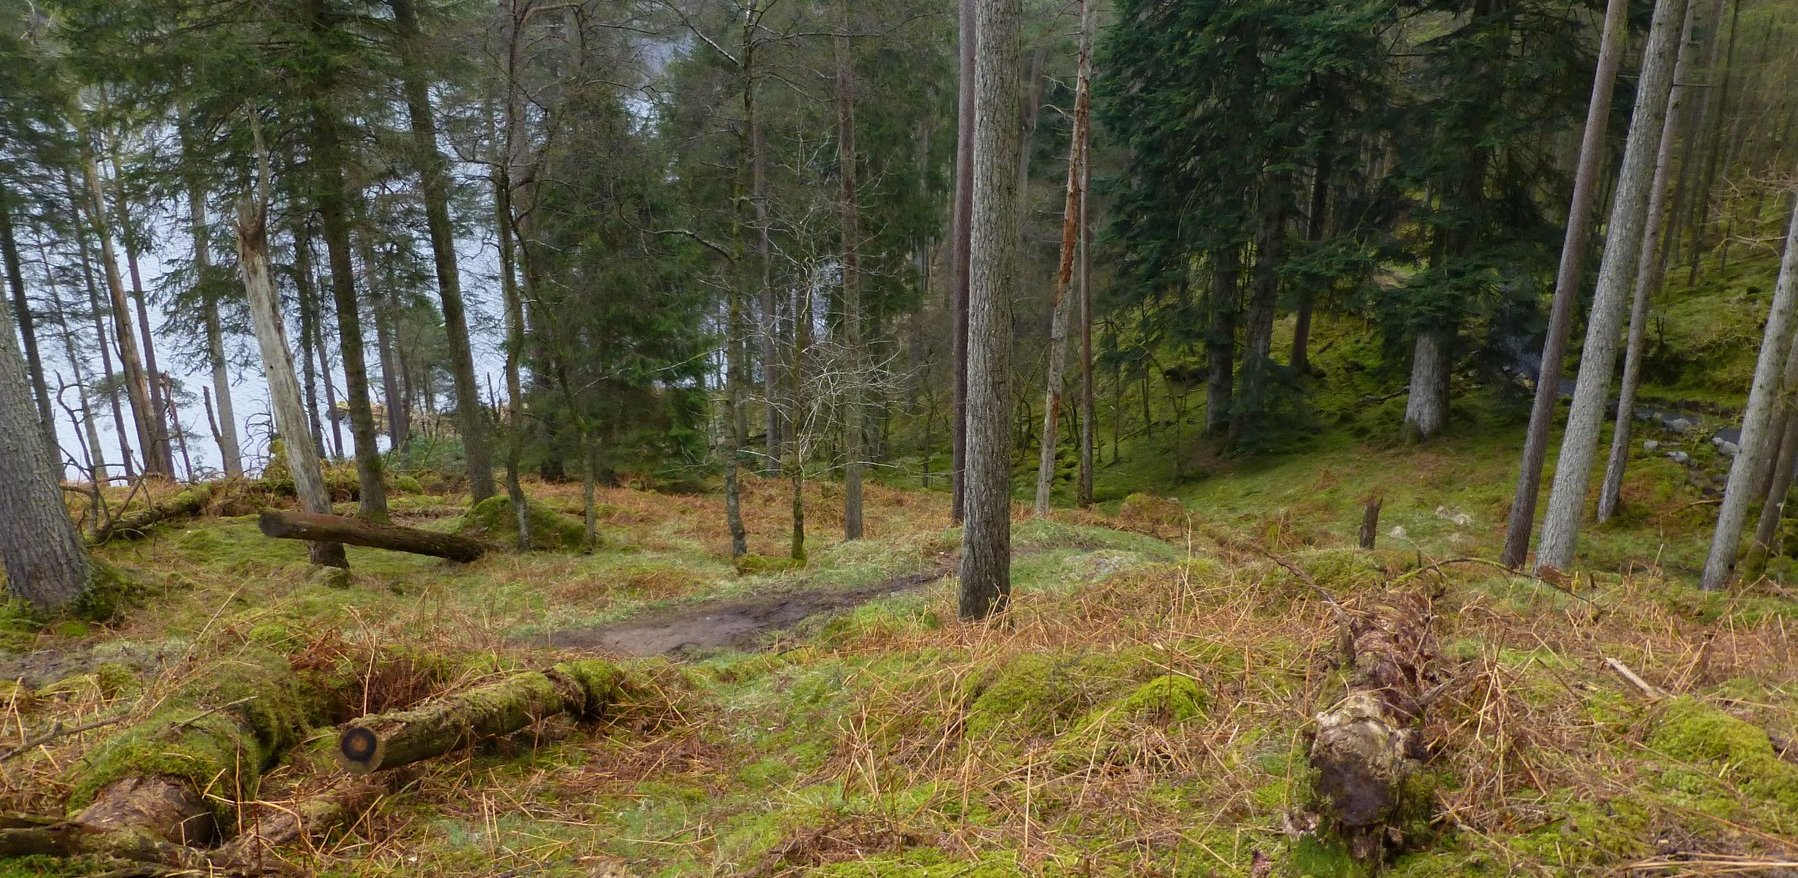 Lovely winding path through the woods beside Loch Trool